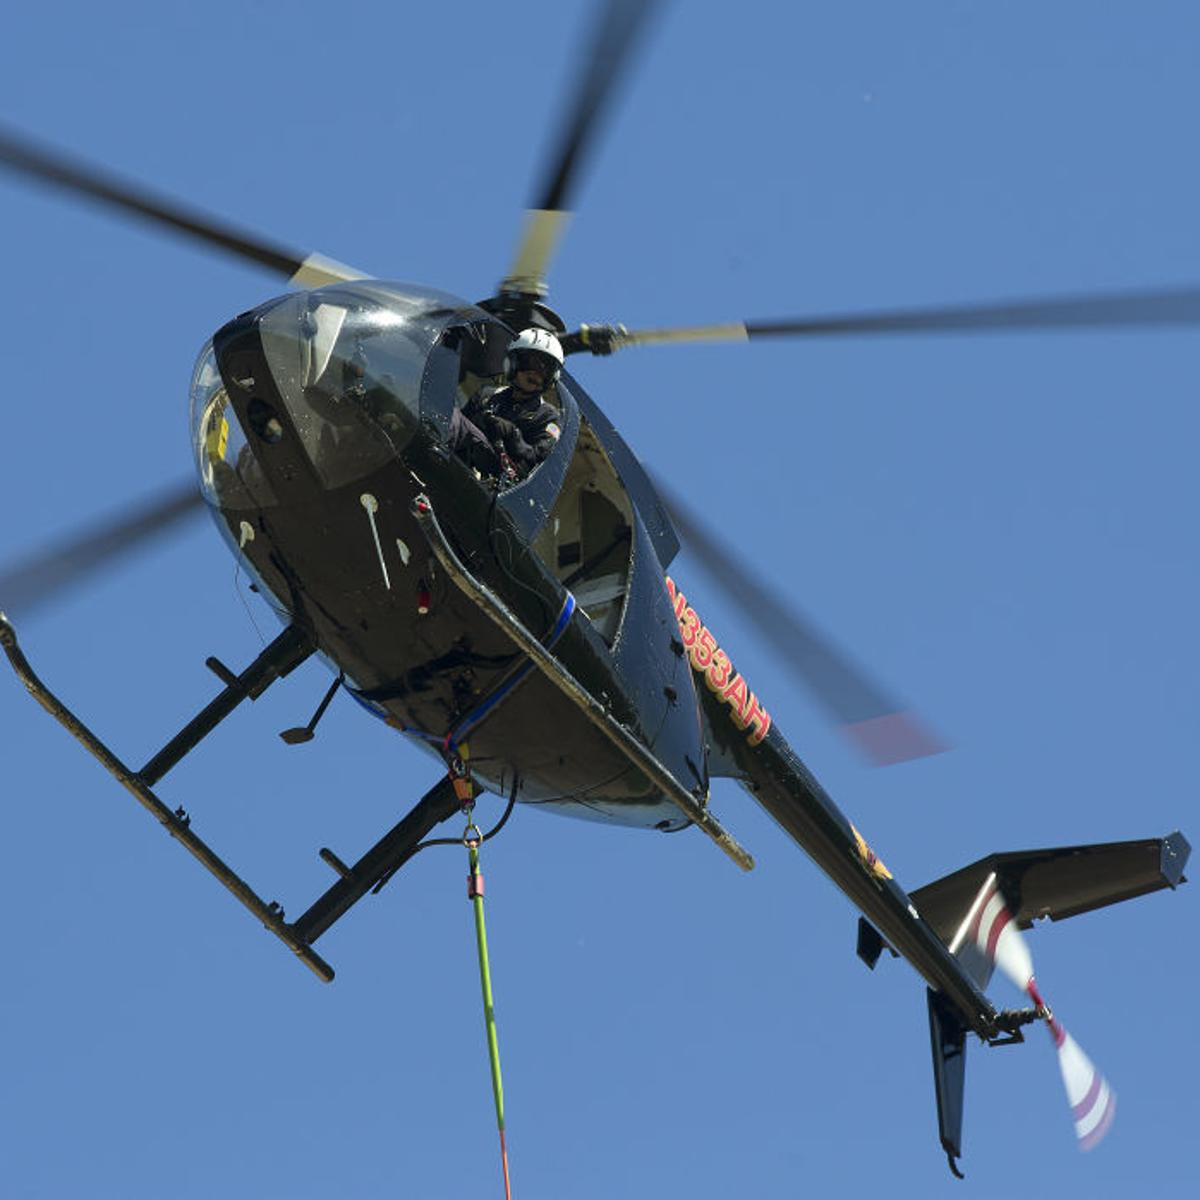 Helicopter will be flying low over area this summer to learn